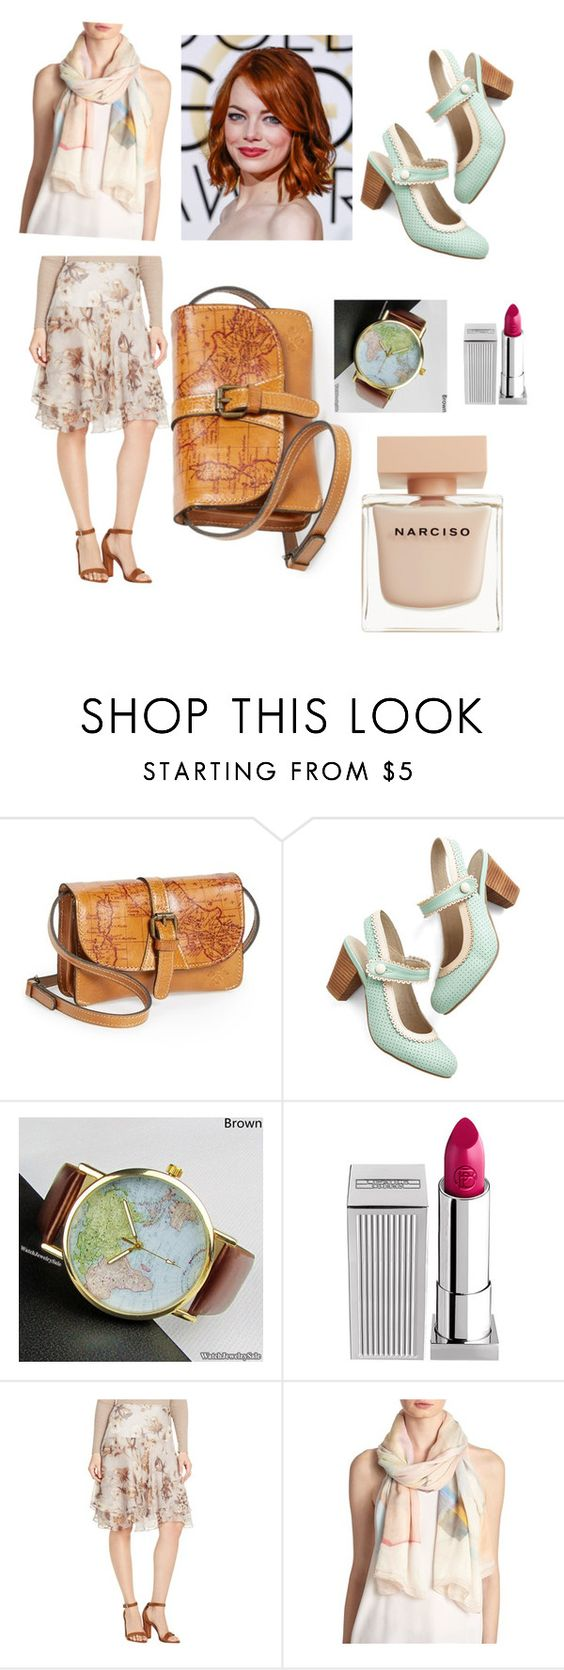 """""""La La World"""" by paula-maria-1 ❤ liked on Polyvore featuring Patricia Nash, Chelsea Crew, Lipstick Queen, Lauren Ralph Lauren, Kenzo and Narciso Rodriguez"""